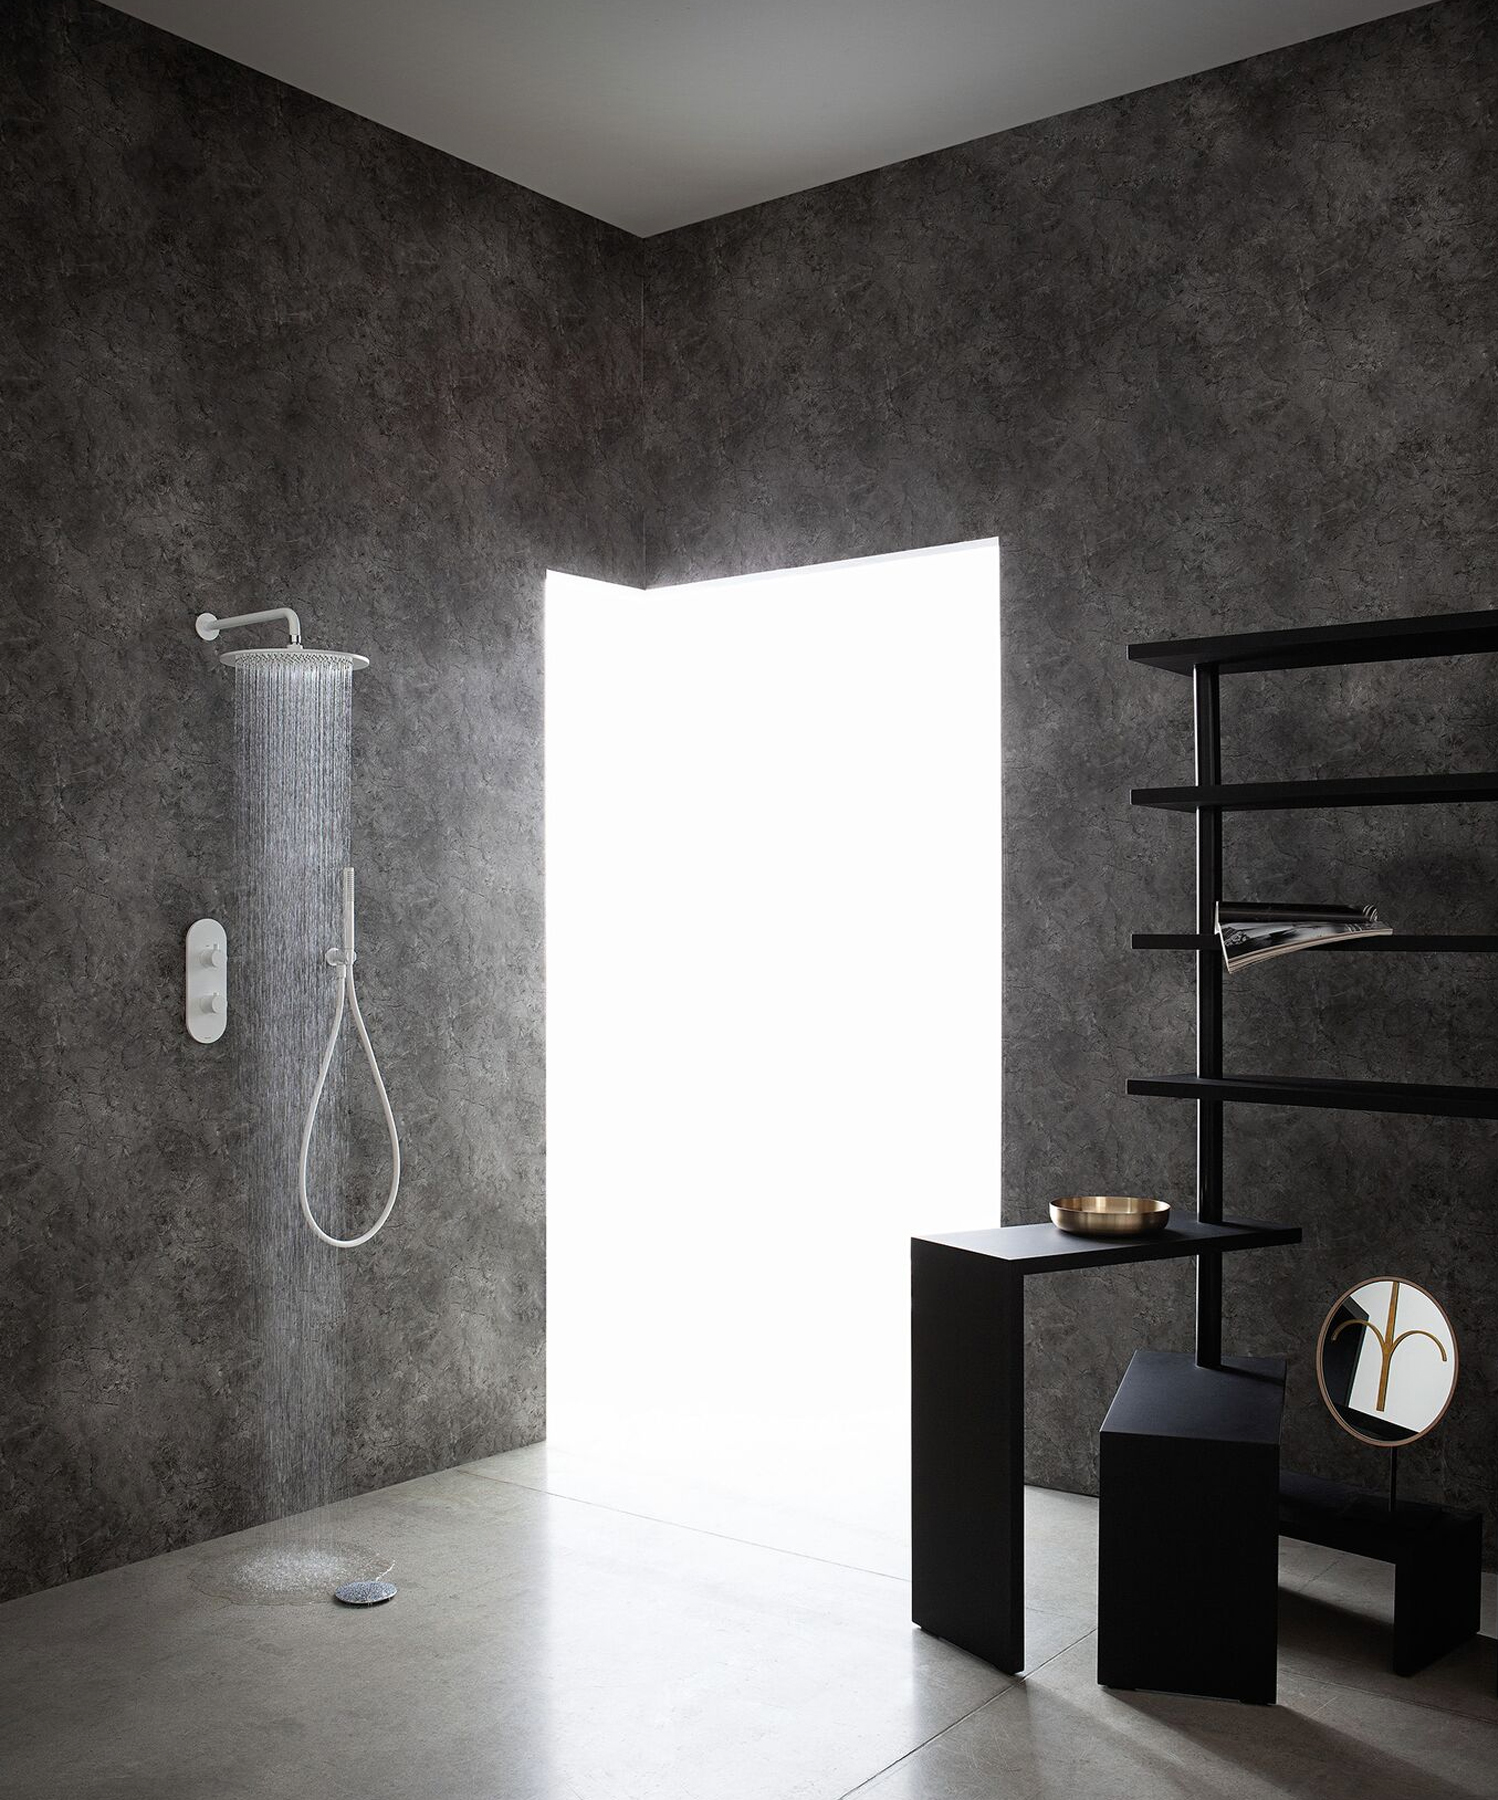 The showerhead is also CalGreen compliant, making it an eco-friendly addition to various settings.